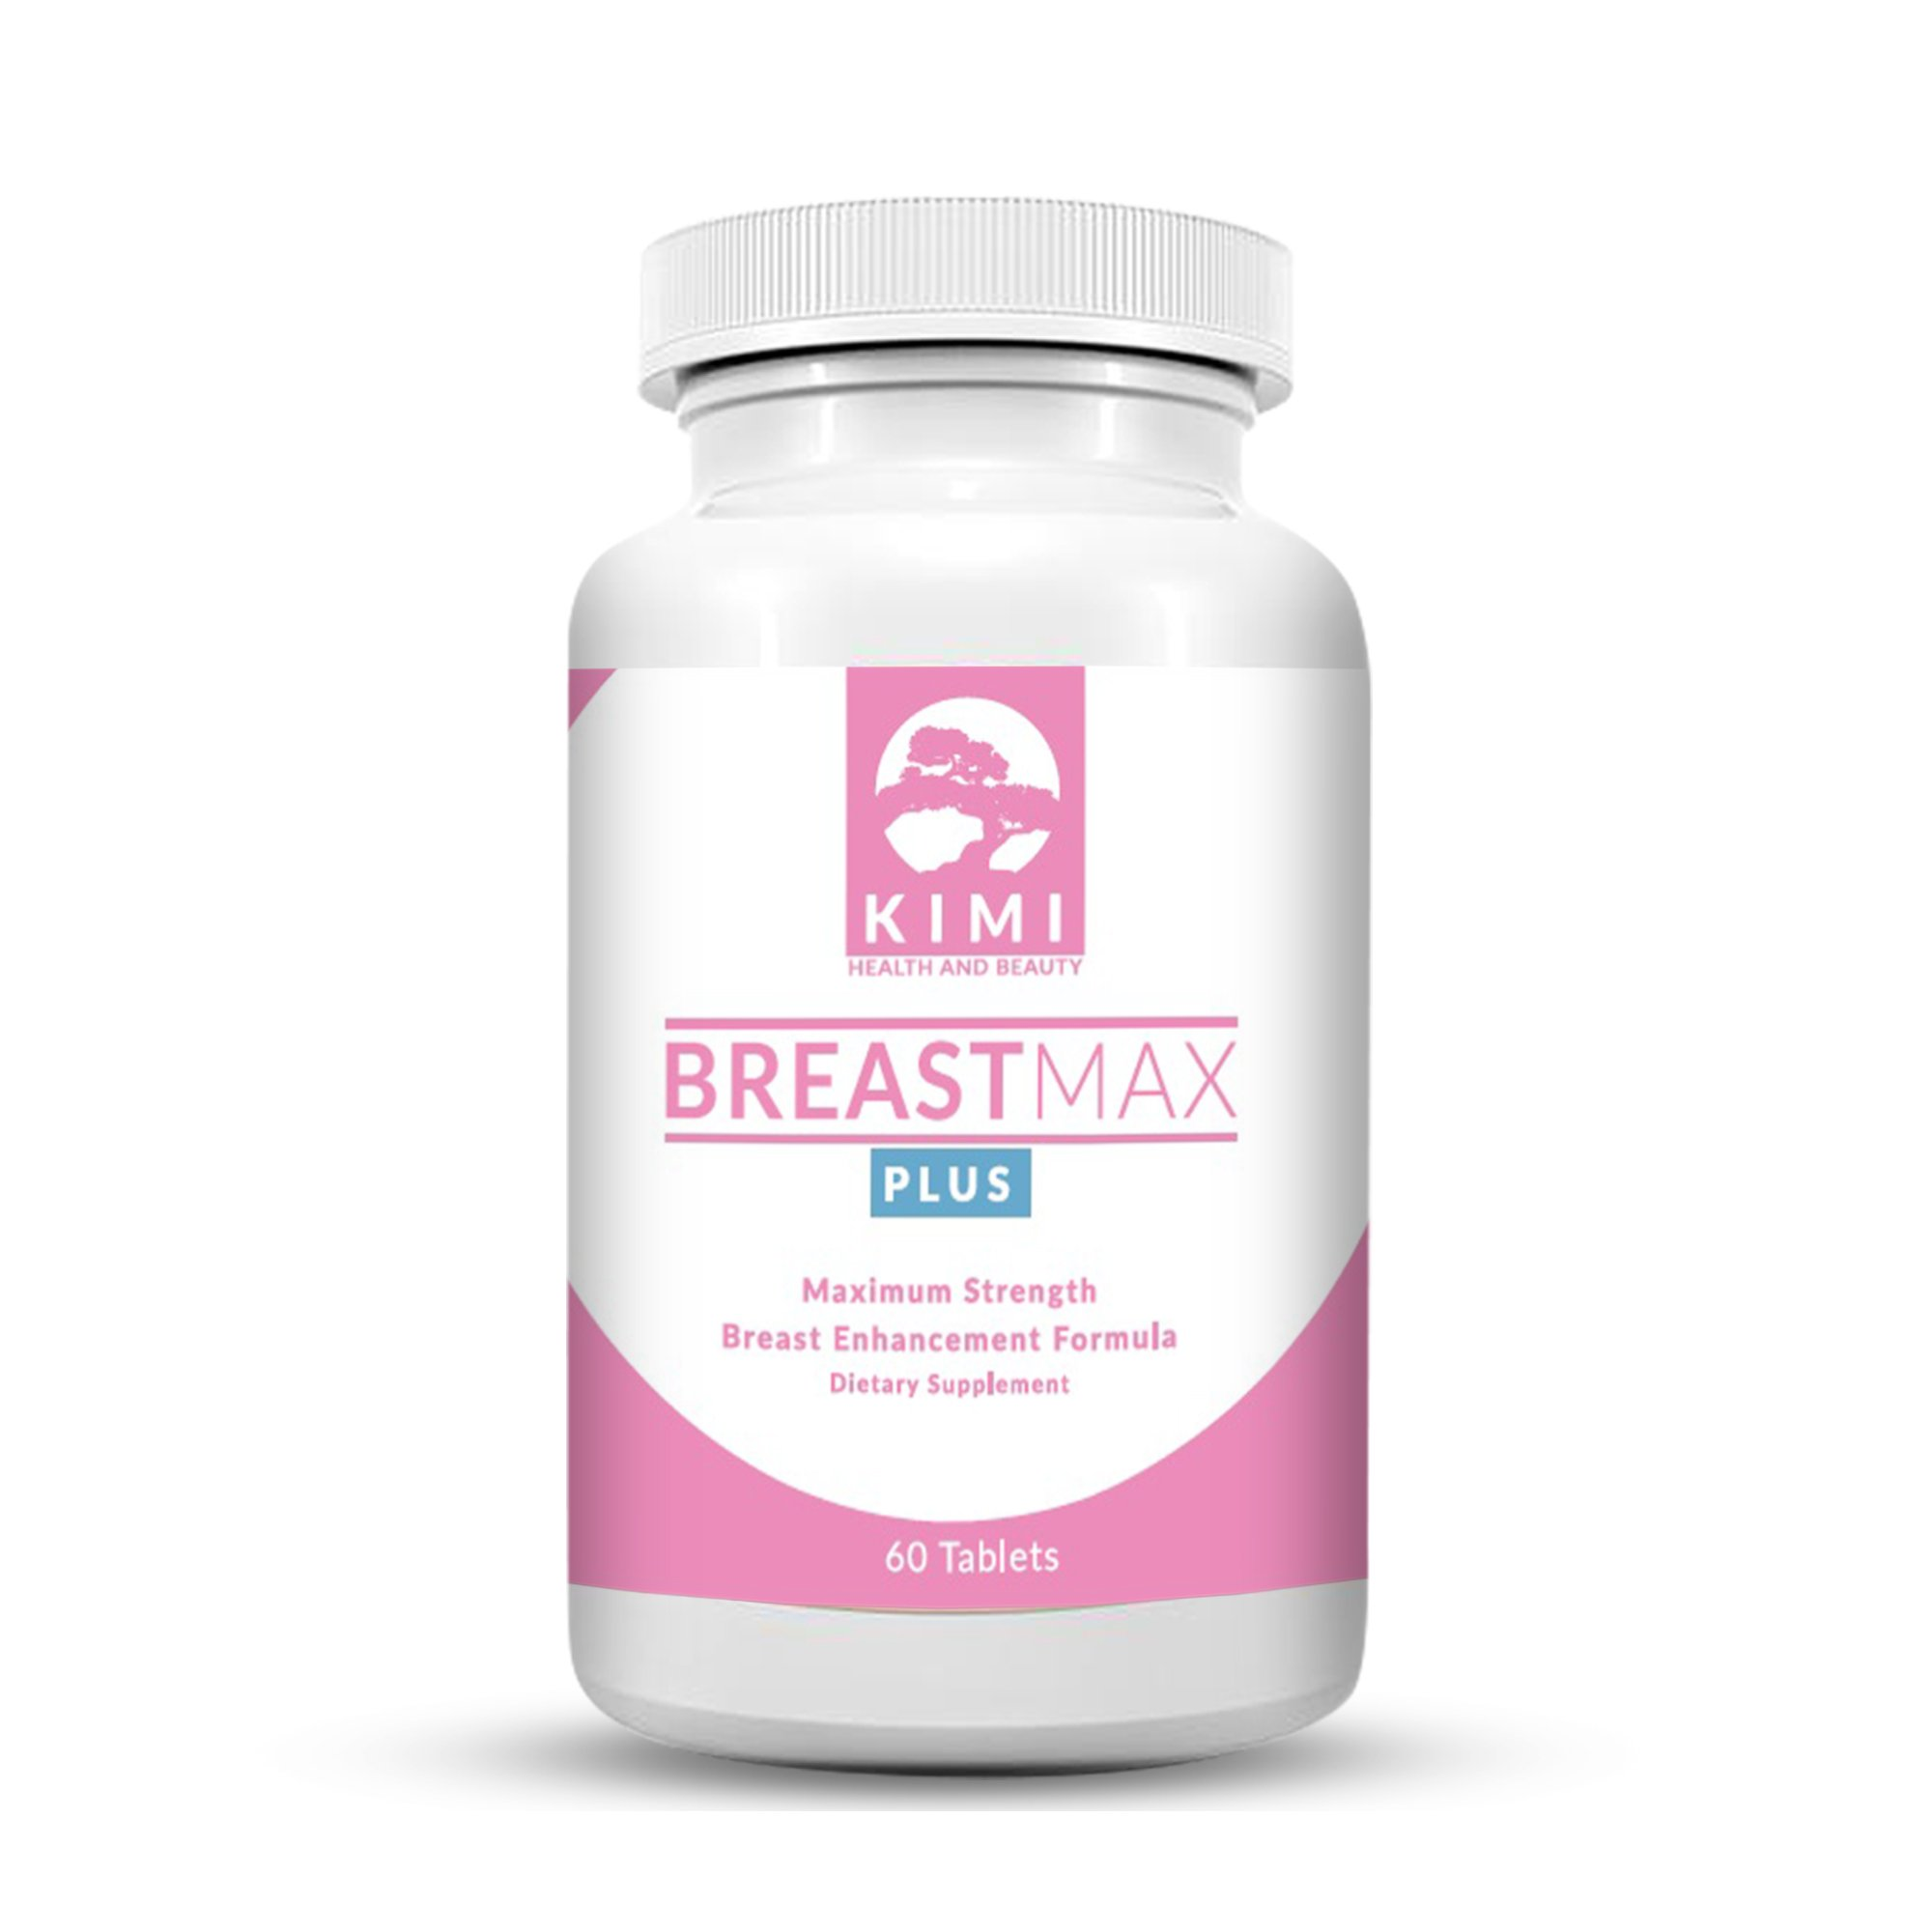 Breast Enhancement Pills | Breast Max Plus - The BEST Top Rated Natural Augmentation that works!